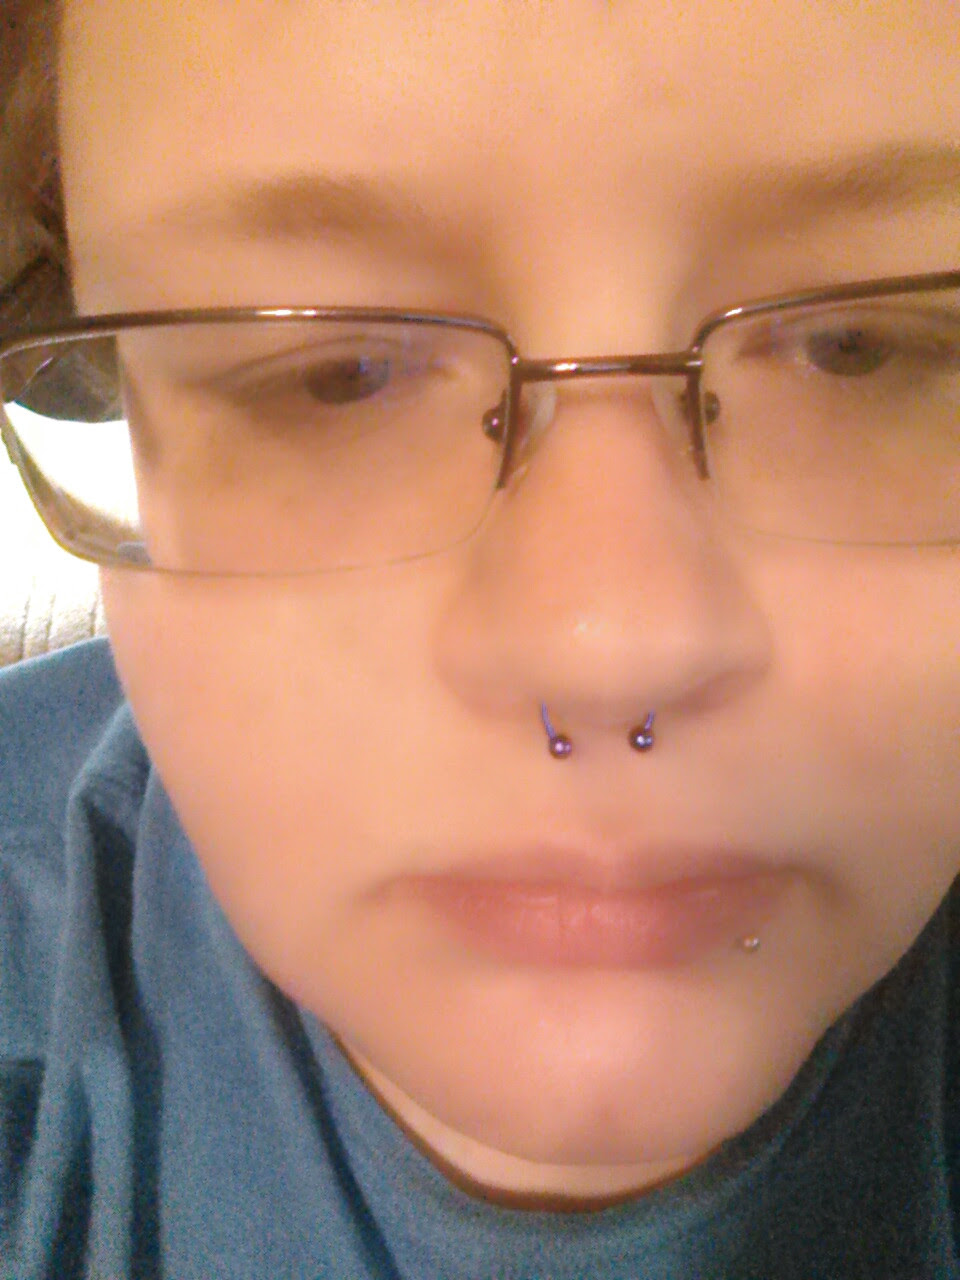 I Got My Septum Pierced Today And Its A Bit Crooked Piercer Said